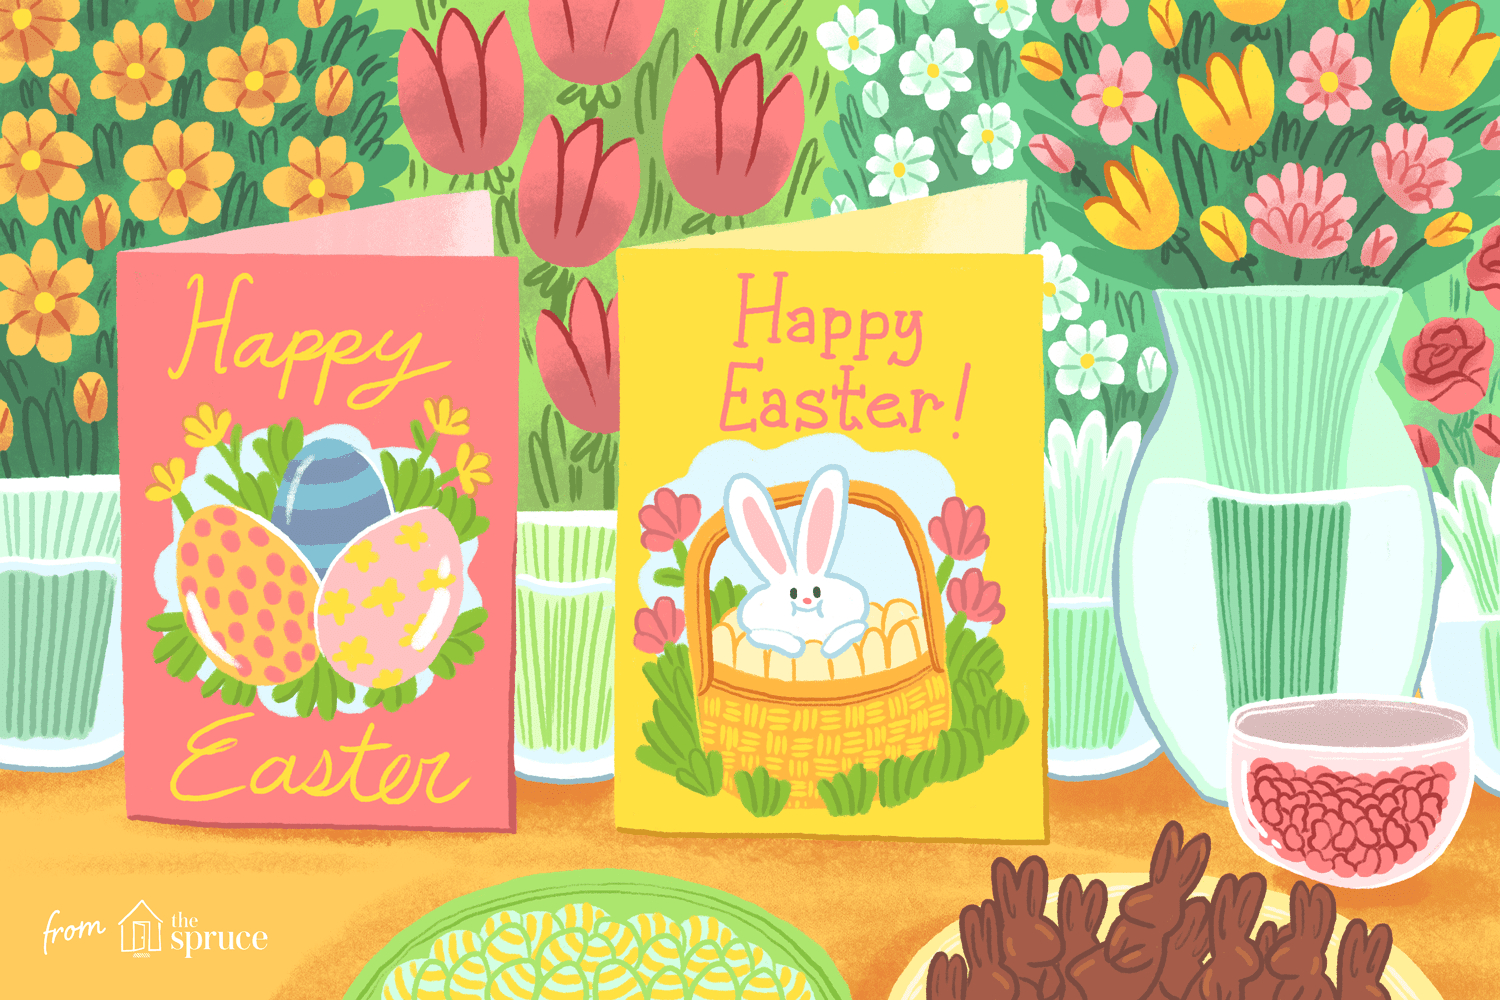 12 Free, Printable Easter Cards For Everyone You Know - Free Printable Easter Greeting Cards